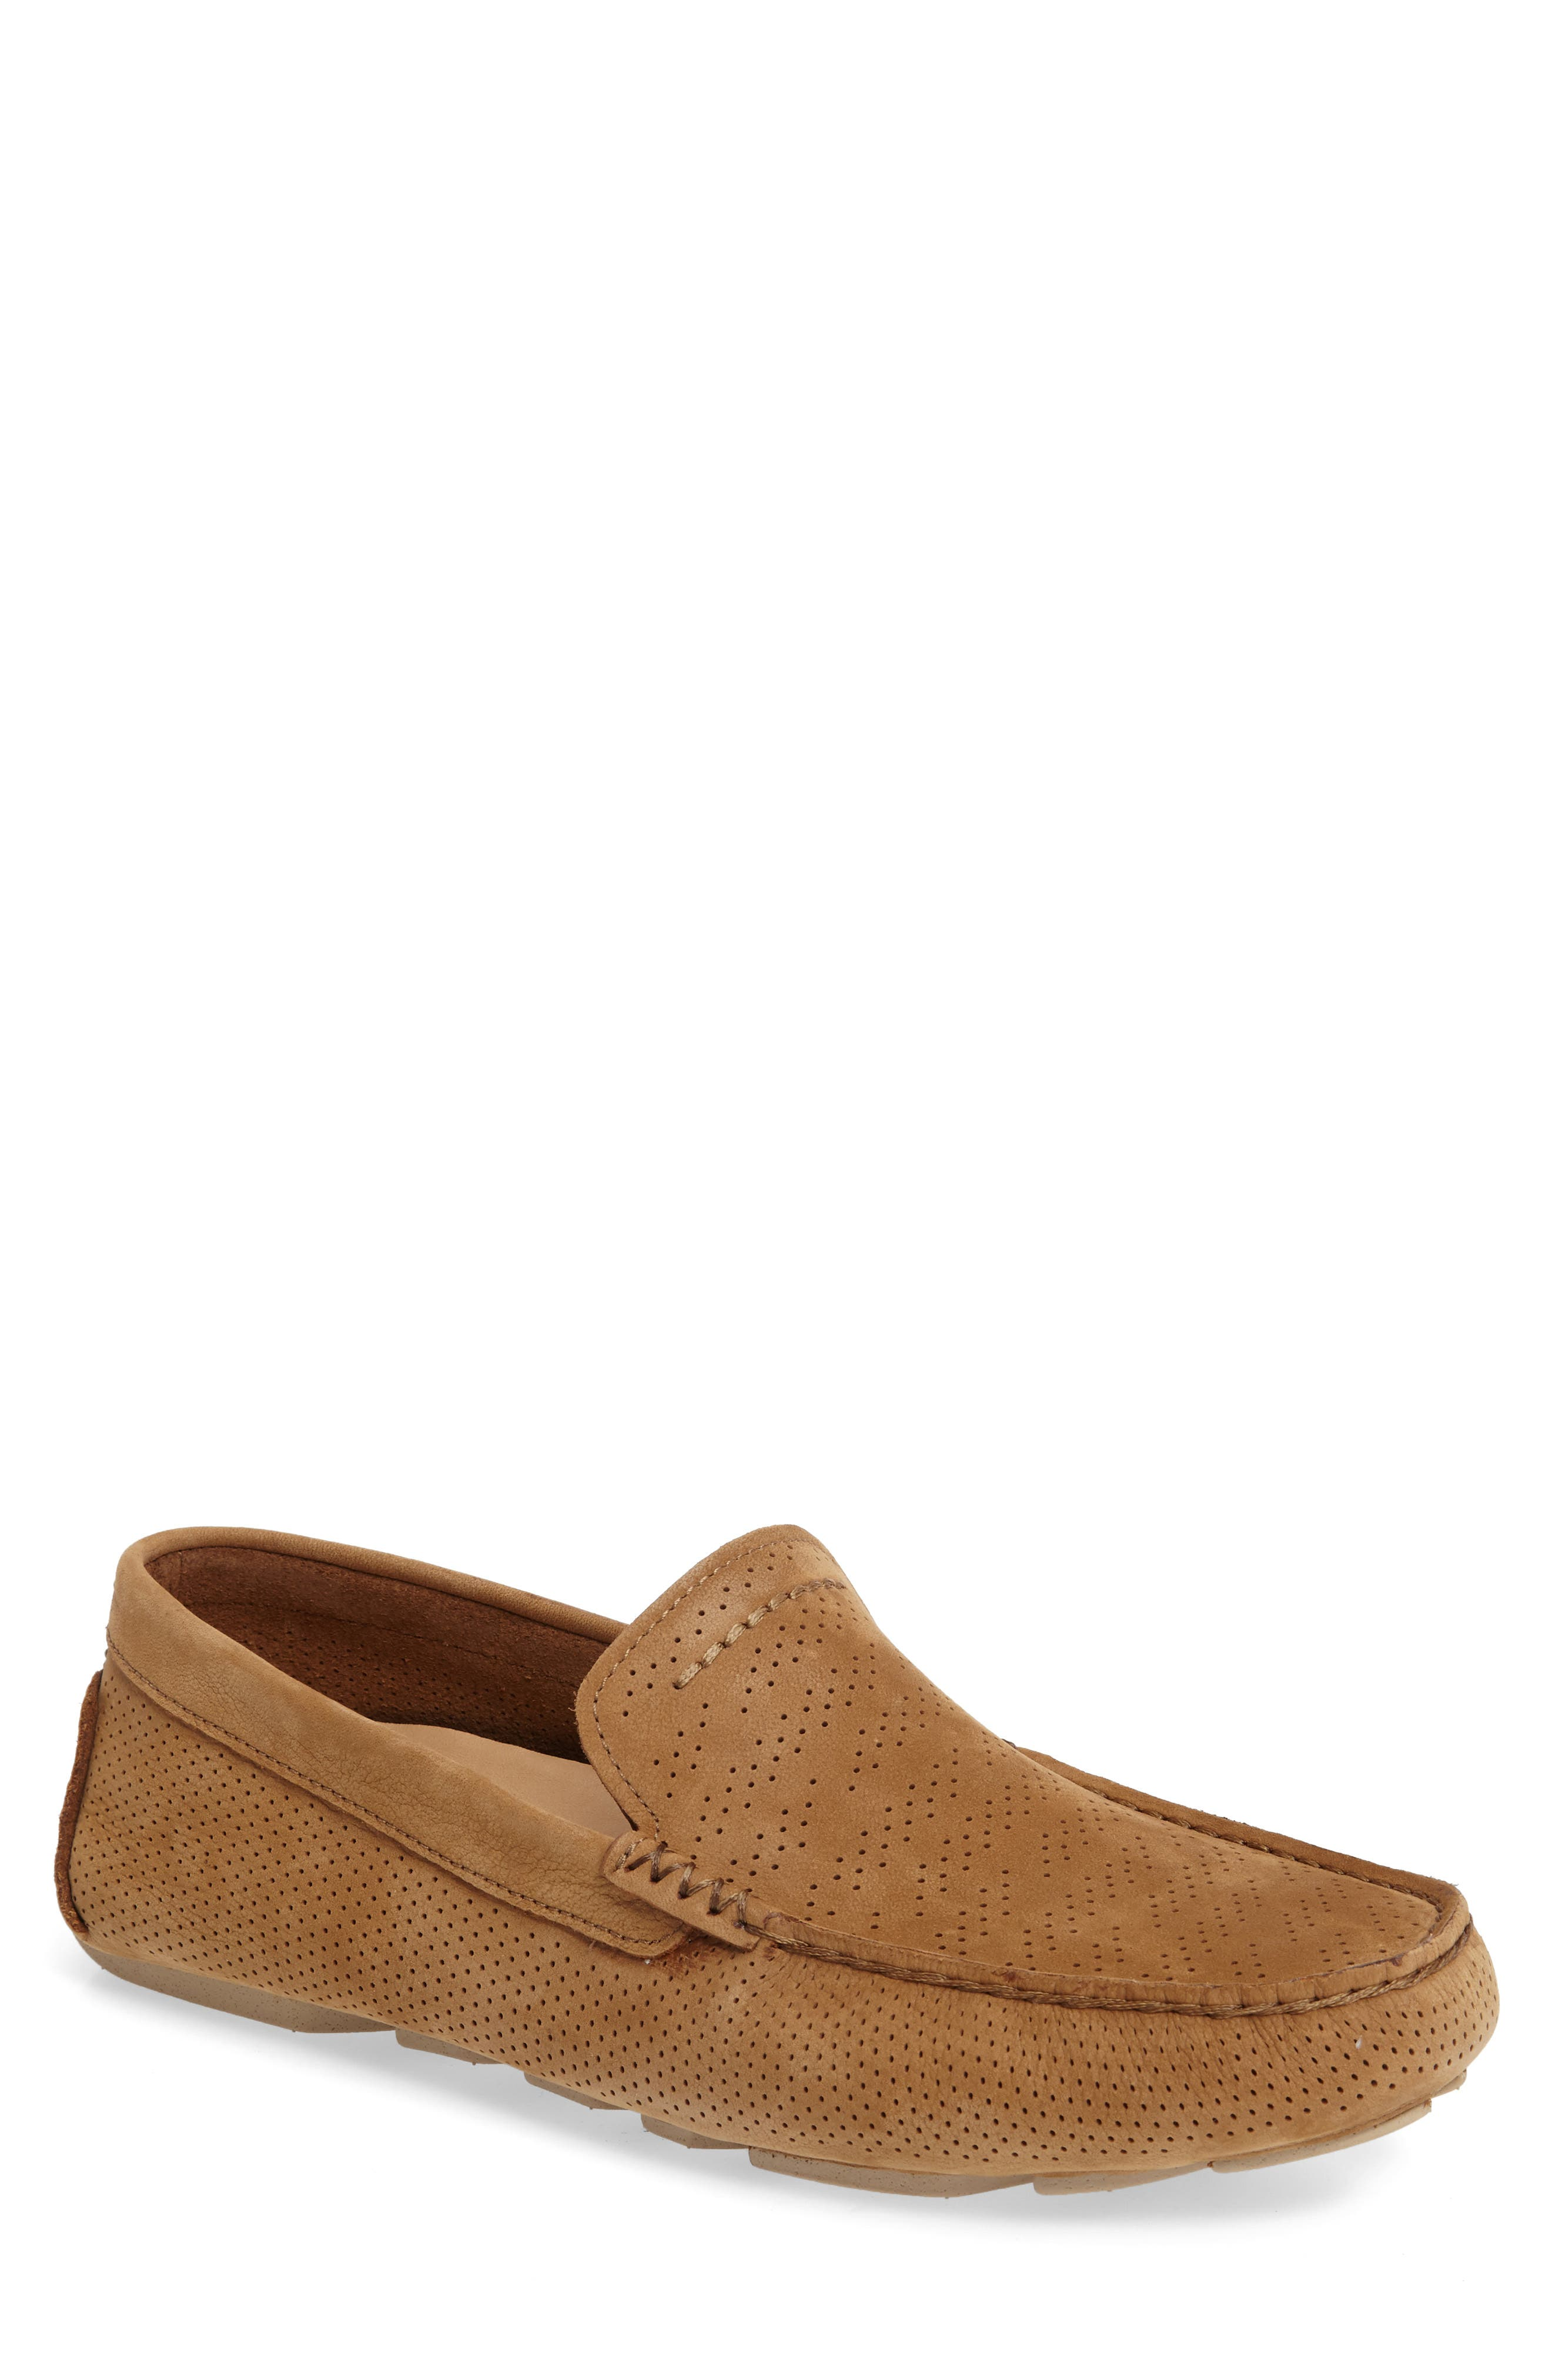 UGG<SUP>®</SUP>, Henrick Twinsole<sup>®</sup> Driving Shoe, Main thumbnail 1, color, TAMARIND